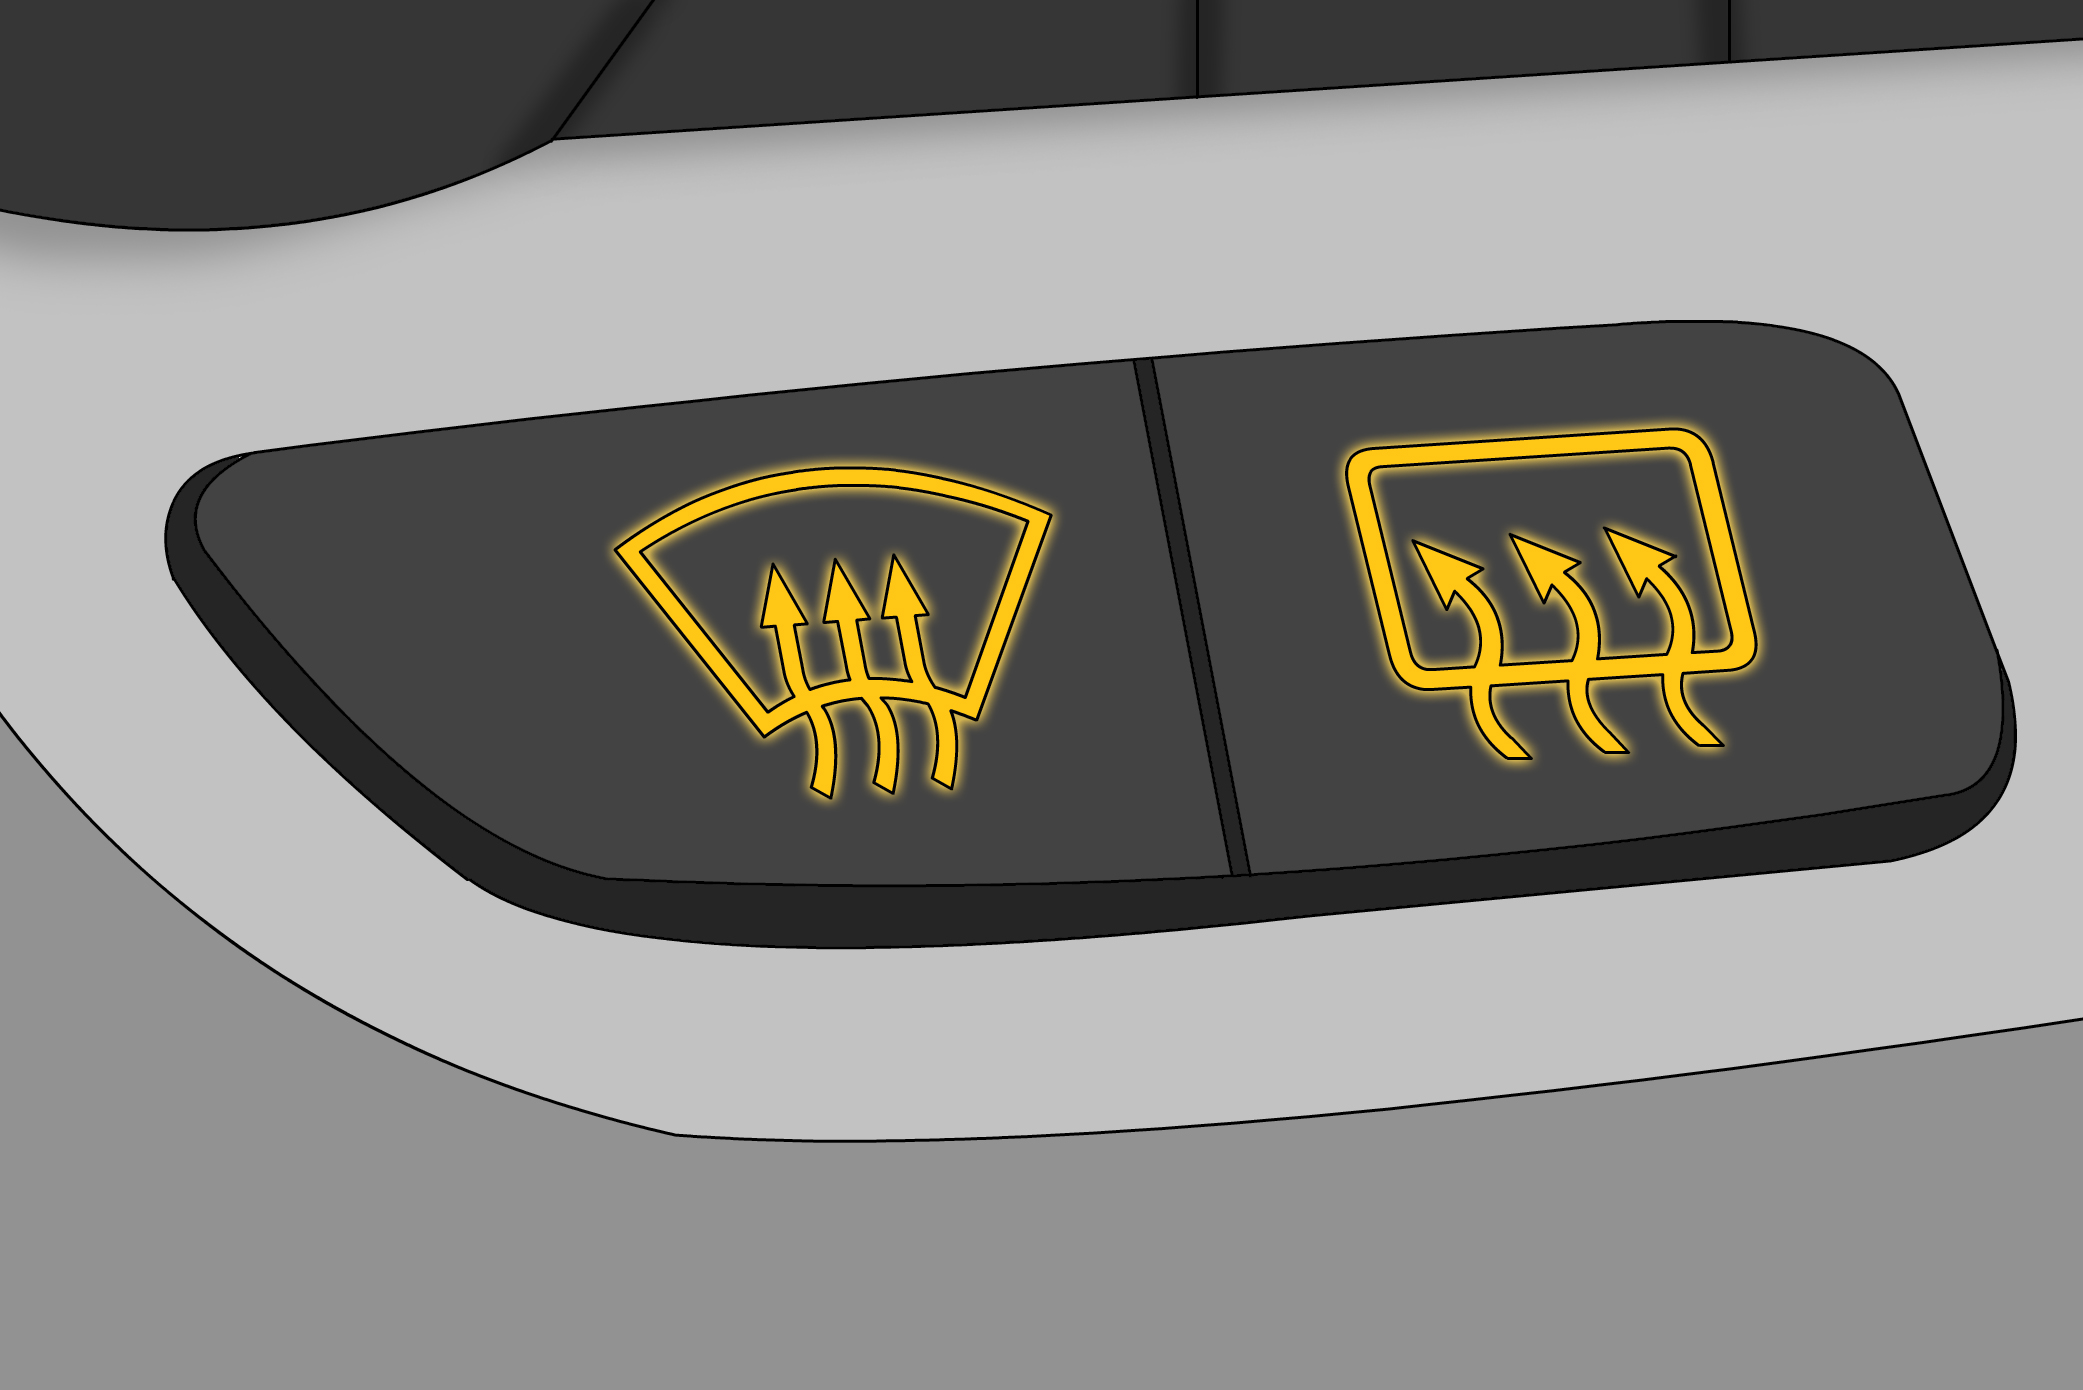 What Does the Defrost Indicator (Front and Rear) Warning Light Mean?